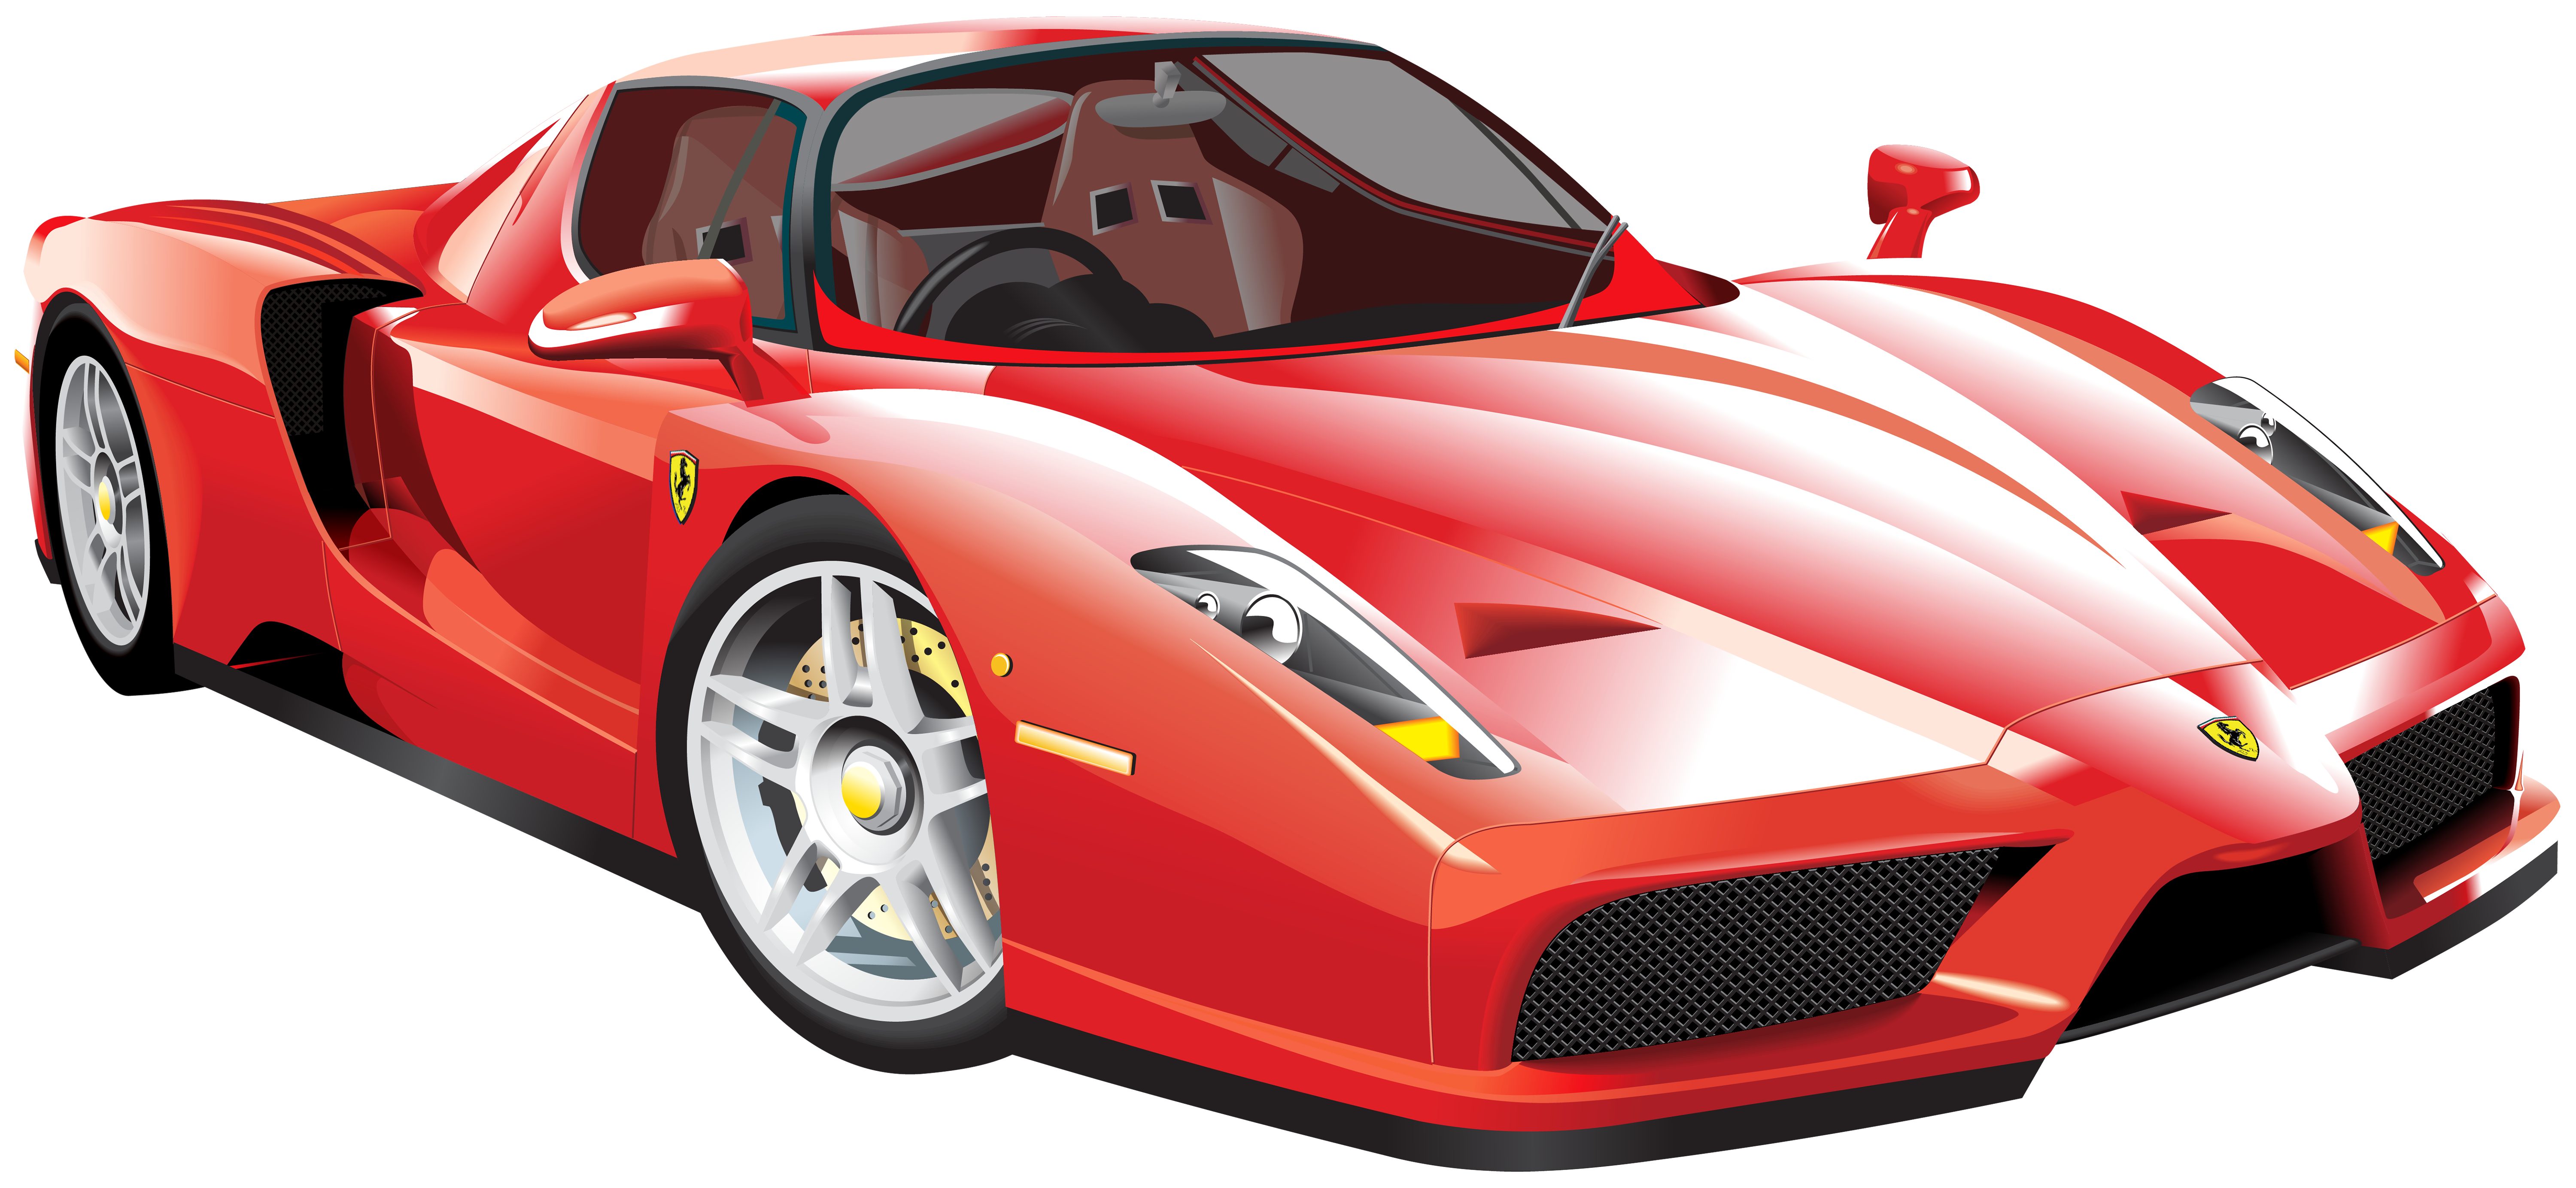 Red car clipart png vector royalty free stock Red Ferrari Car PNG Clip Art - Best WEB Clipart vector royalty free stock